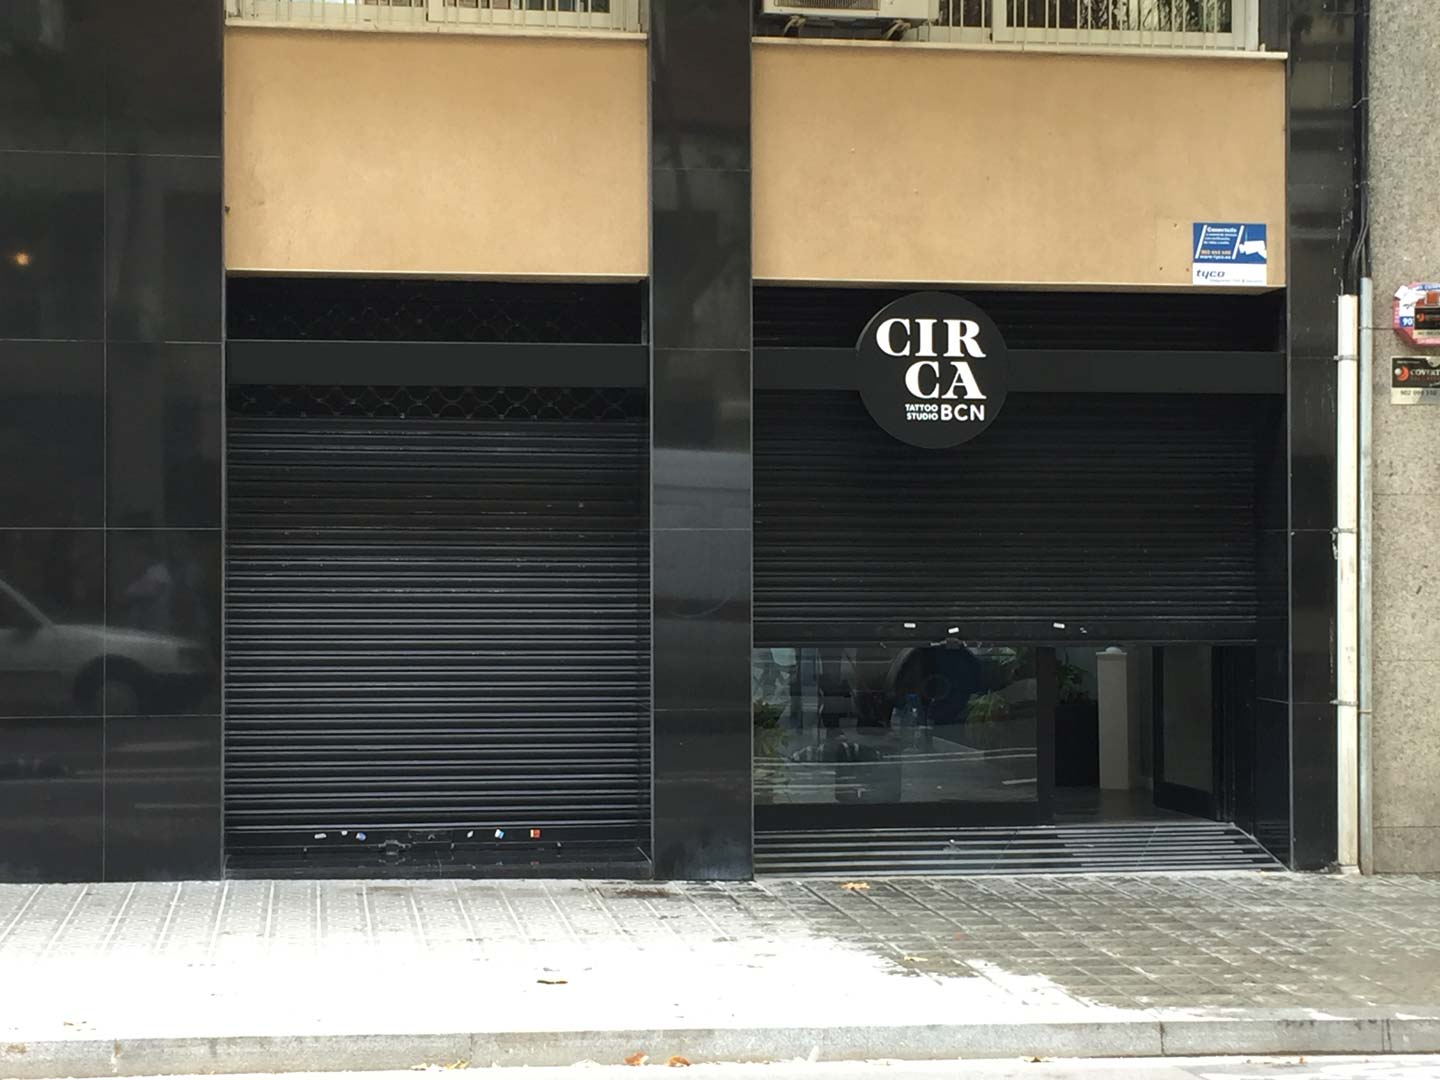 Commercial property for sale in profitability in les Corts in Barcelona